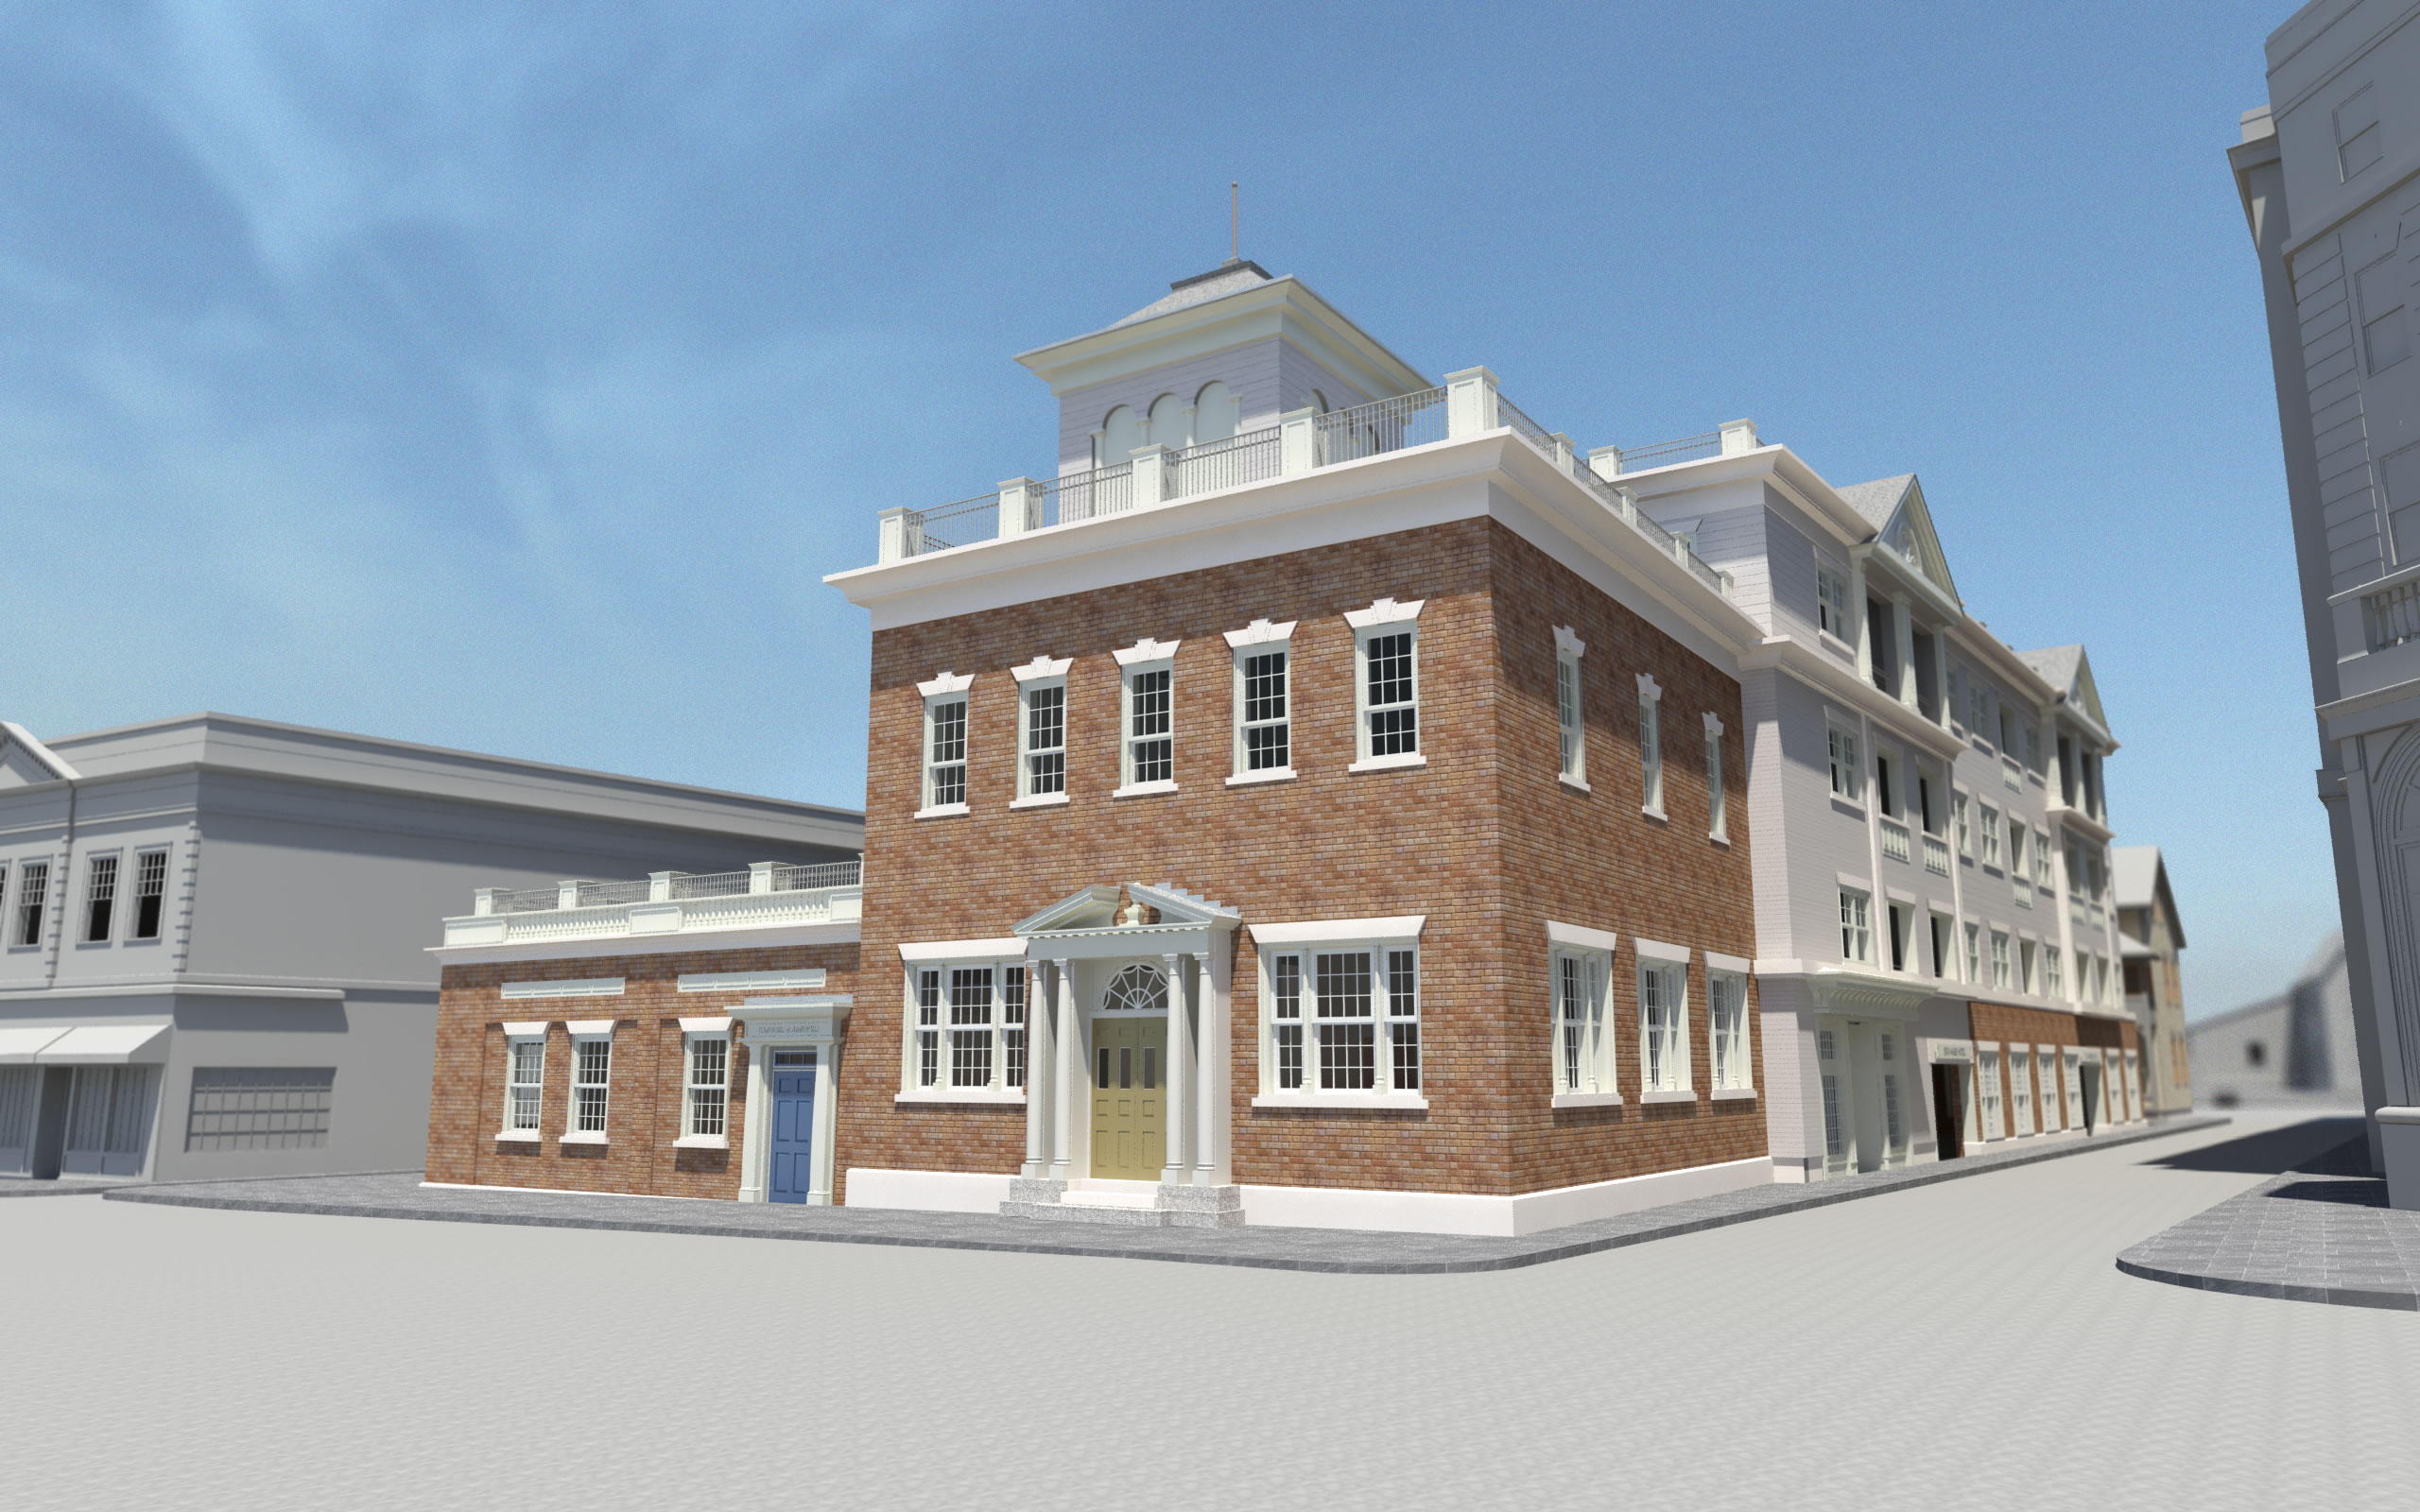 NCA Plans to Transform Historic Exchange Building into a Boutique Hotel